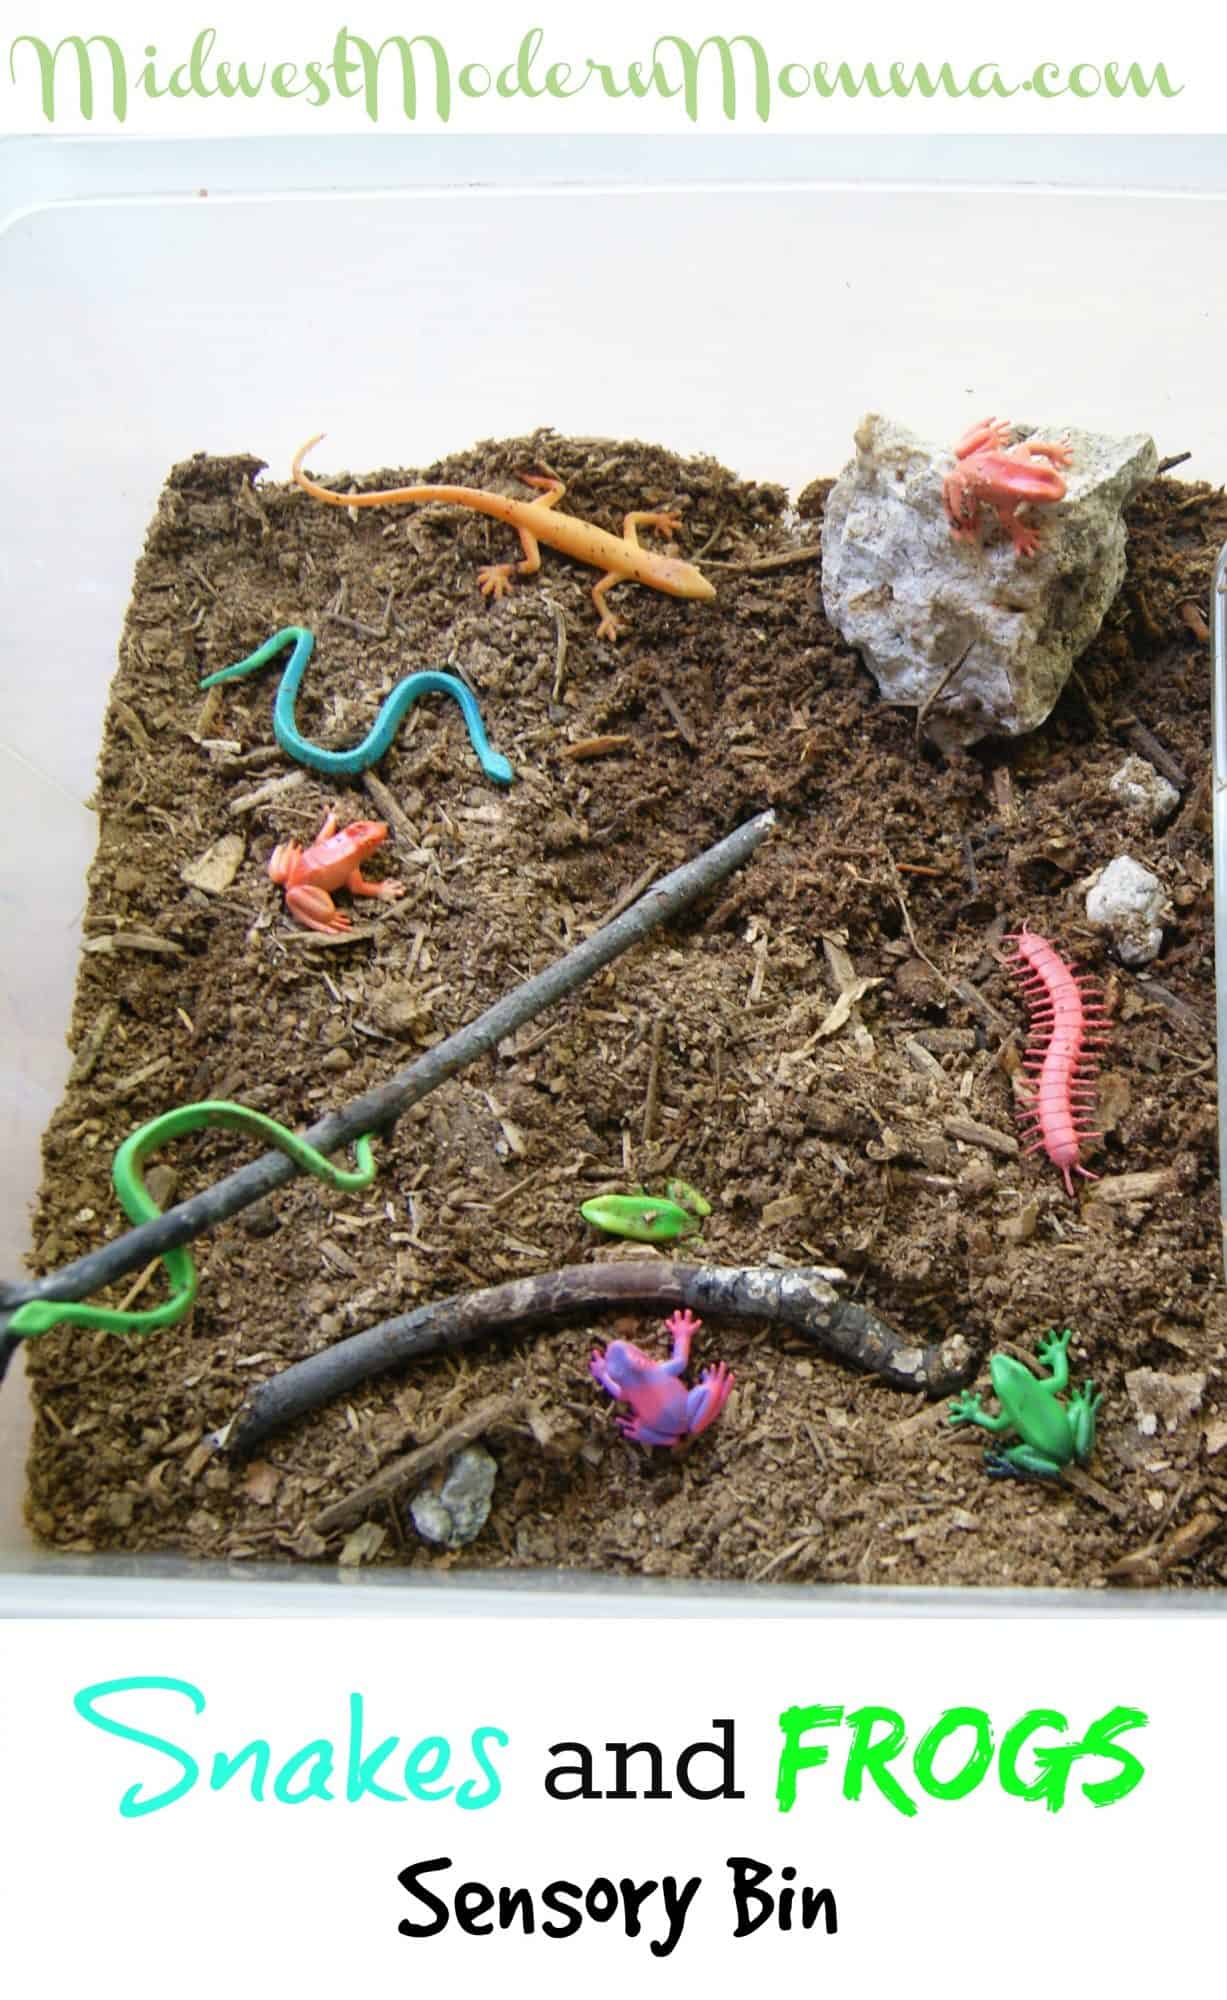 Snakes and Frogs Sensory Bin